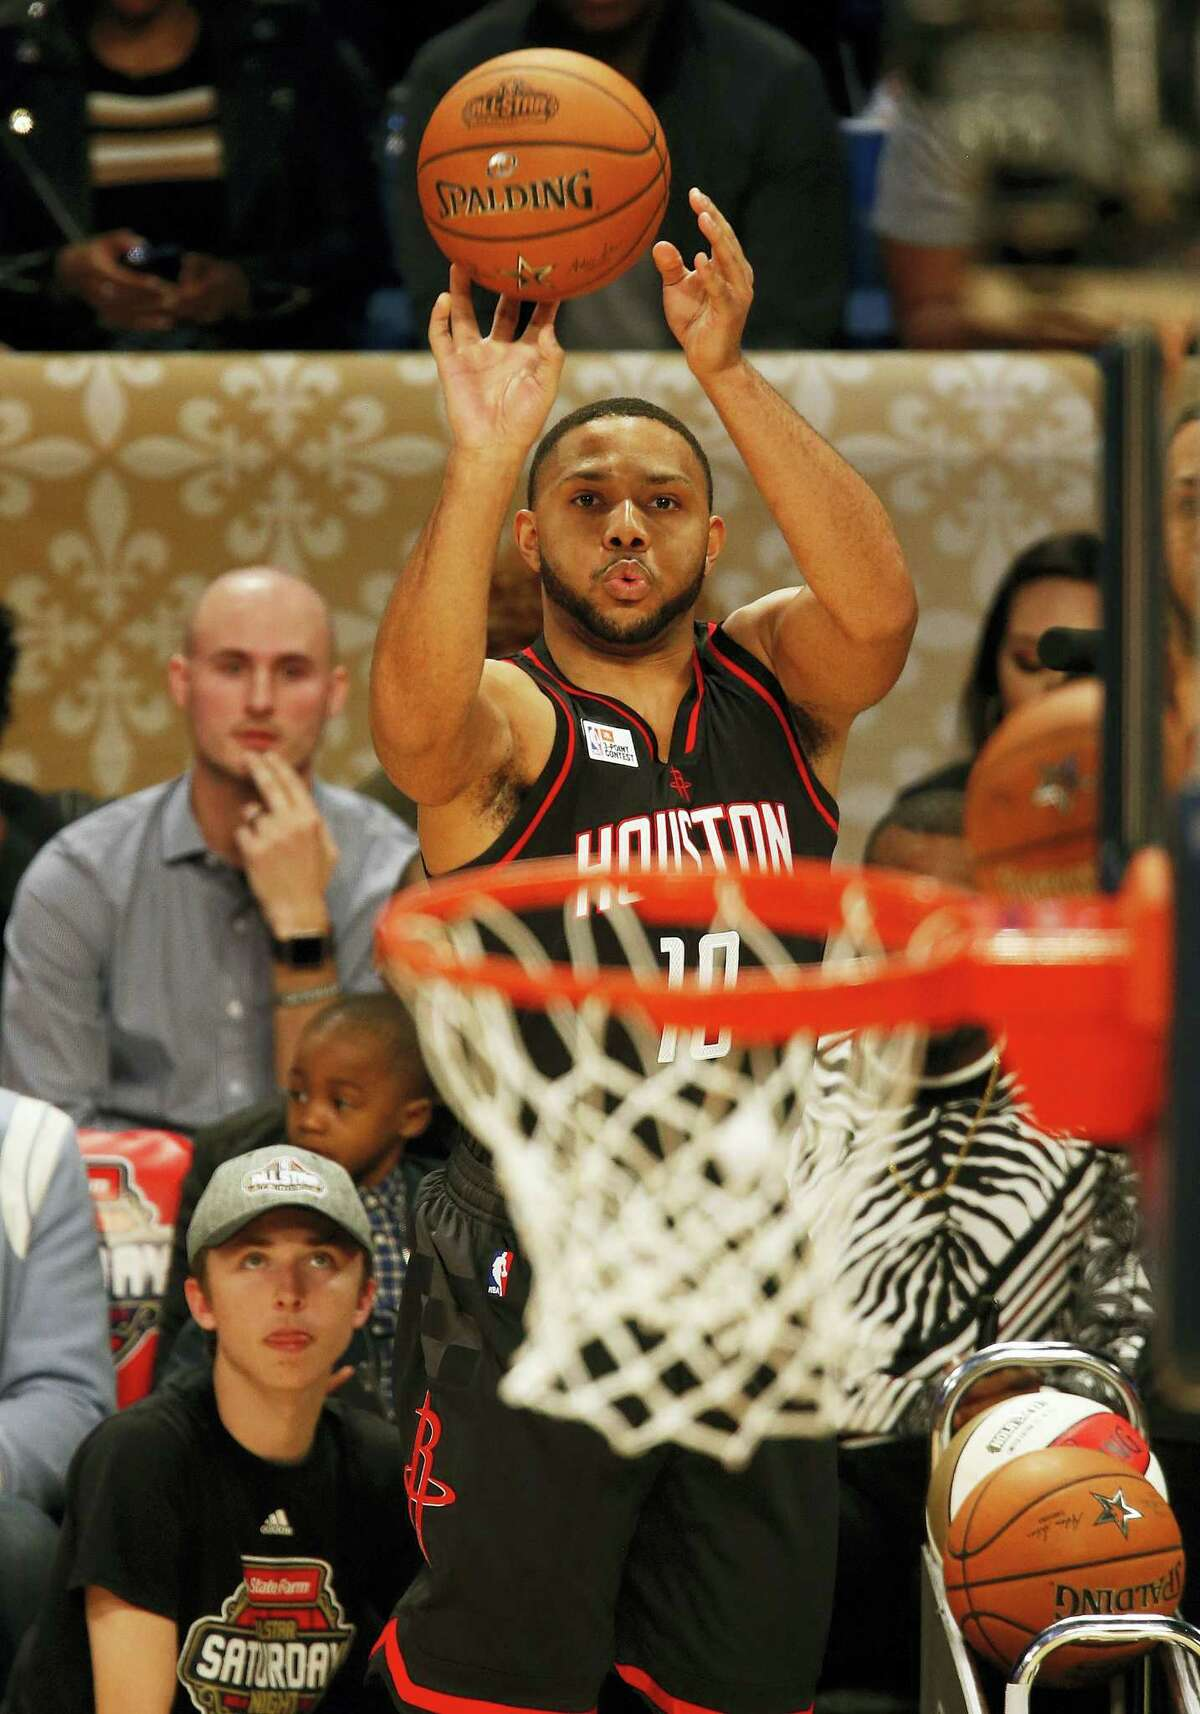 Houston Rockets guard Eric Gordon shoots during the All-Star 3-point shootout on Saturday.